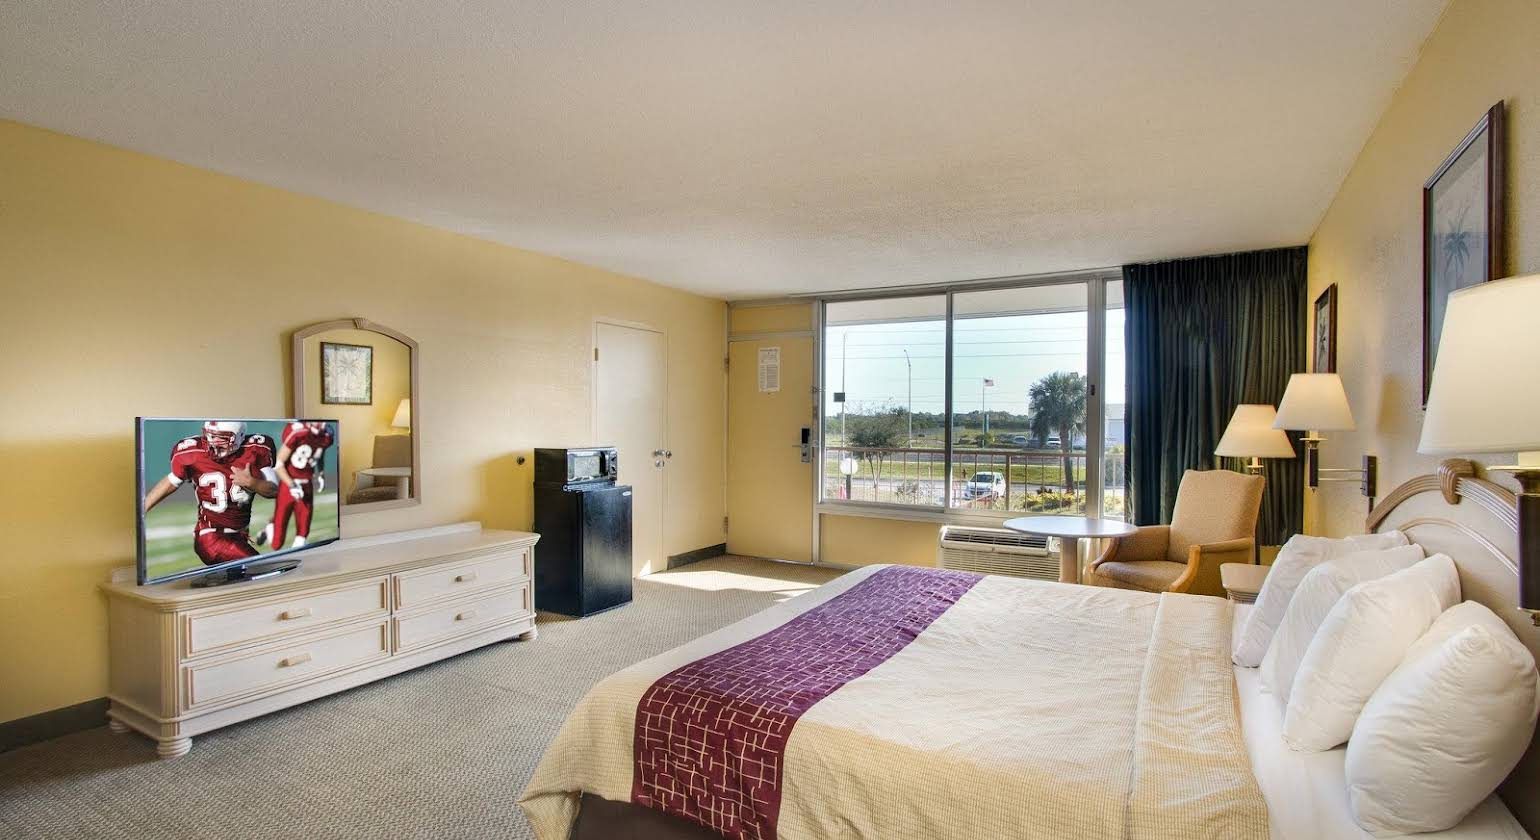 Red Roof Inn Dundee - Winter Haven East